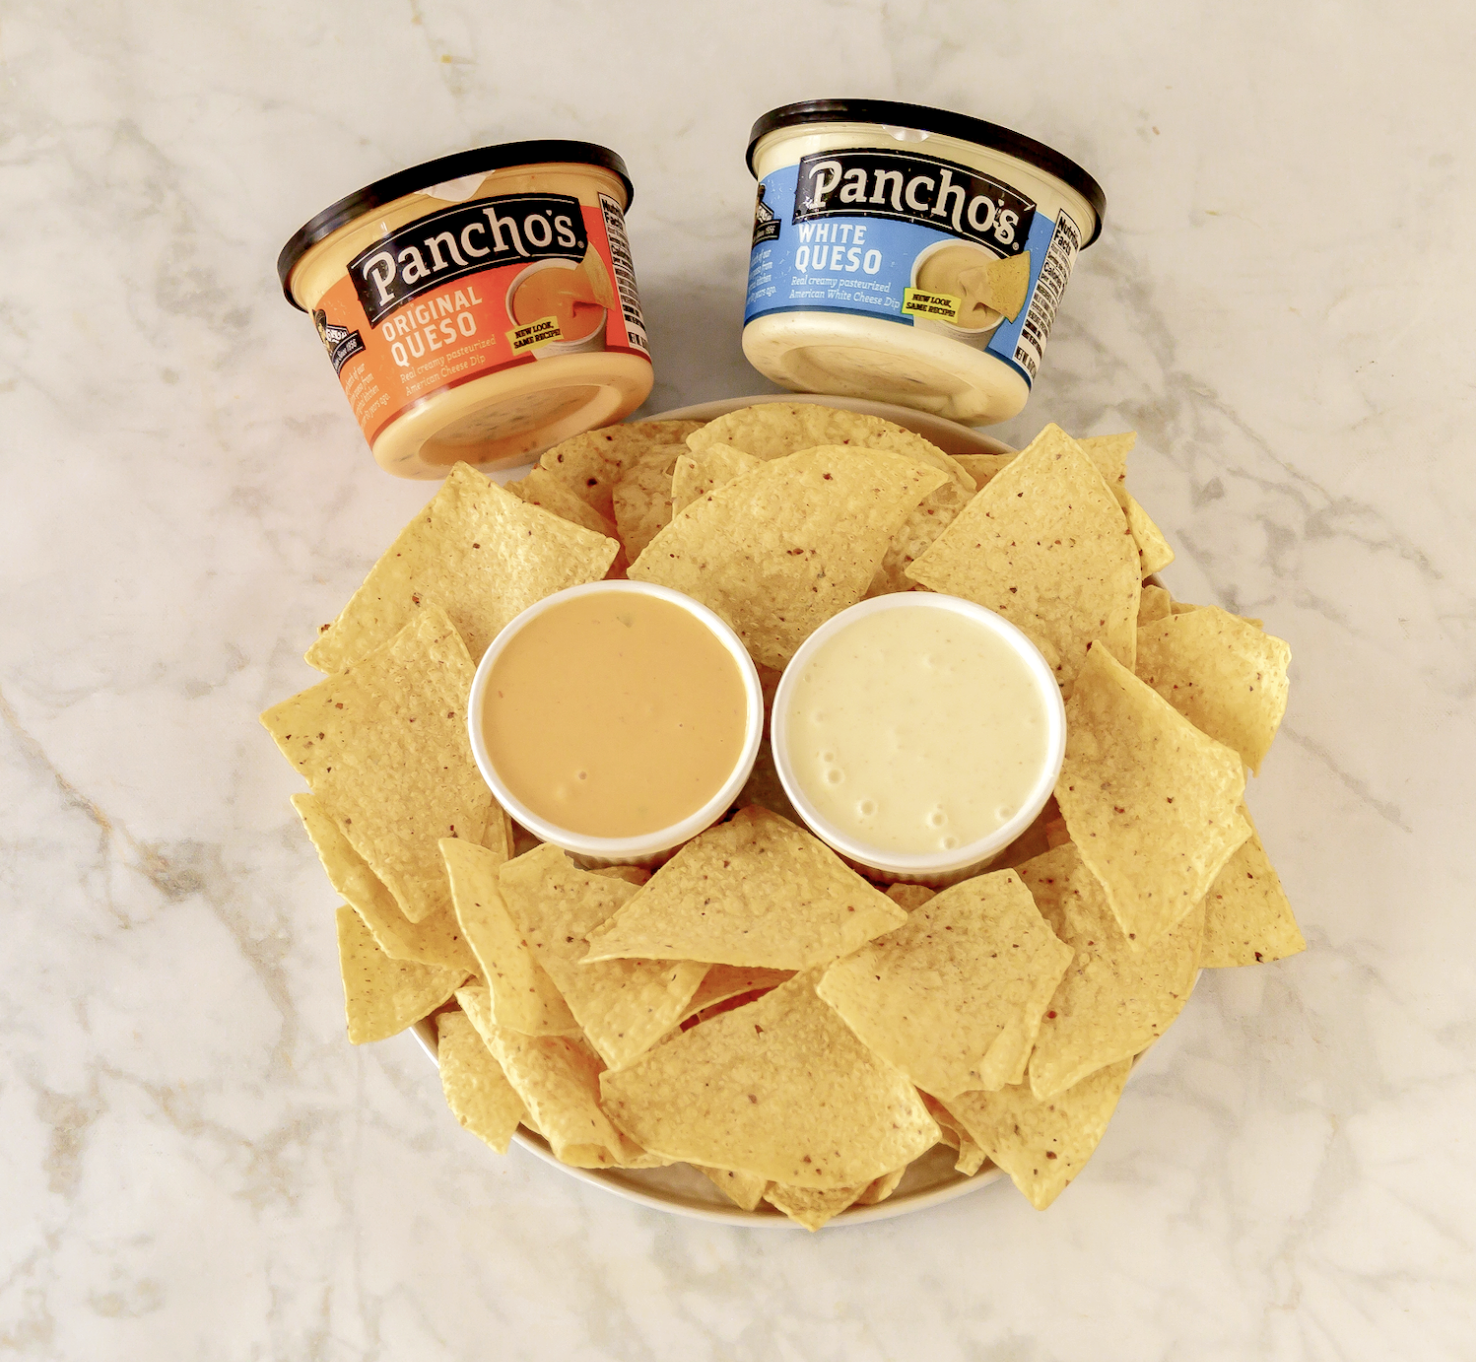 Pancho's Queso Dip in Original Queso and White Queso flavors with corn tortillas